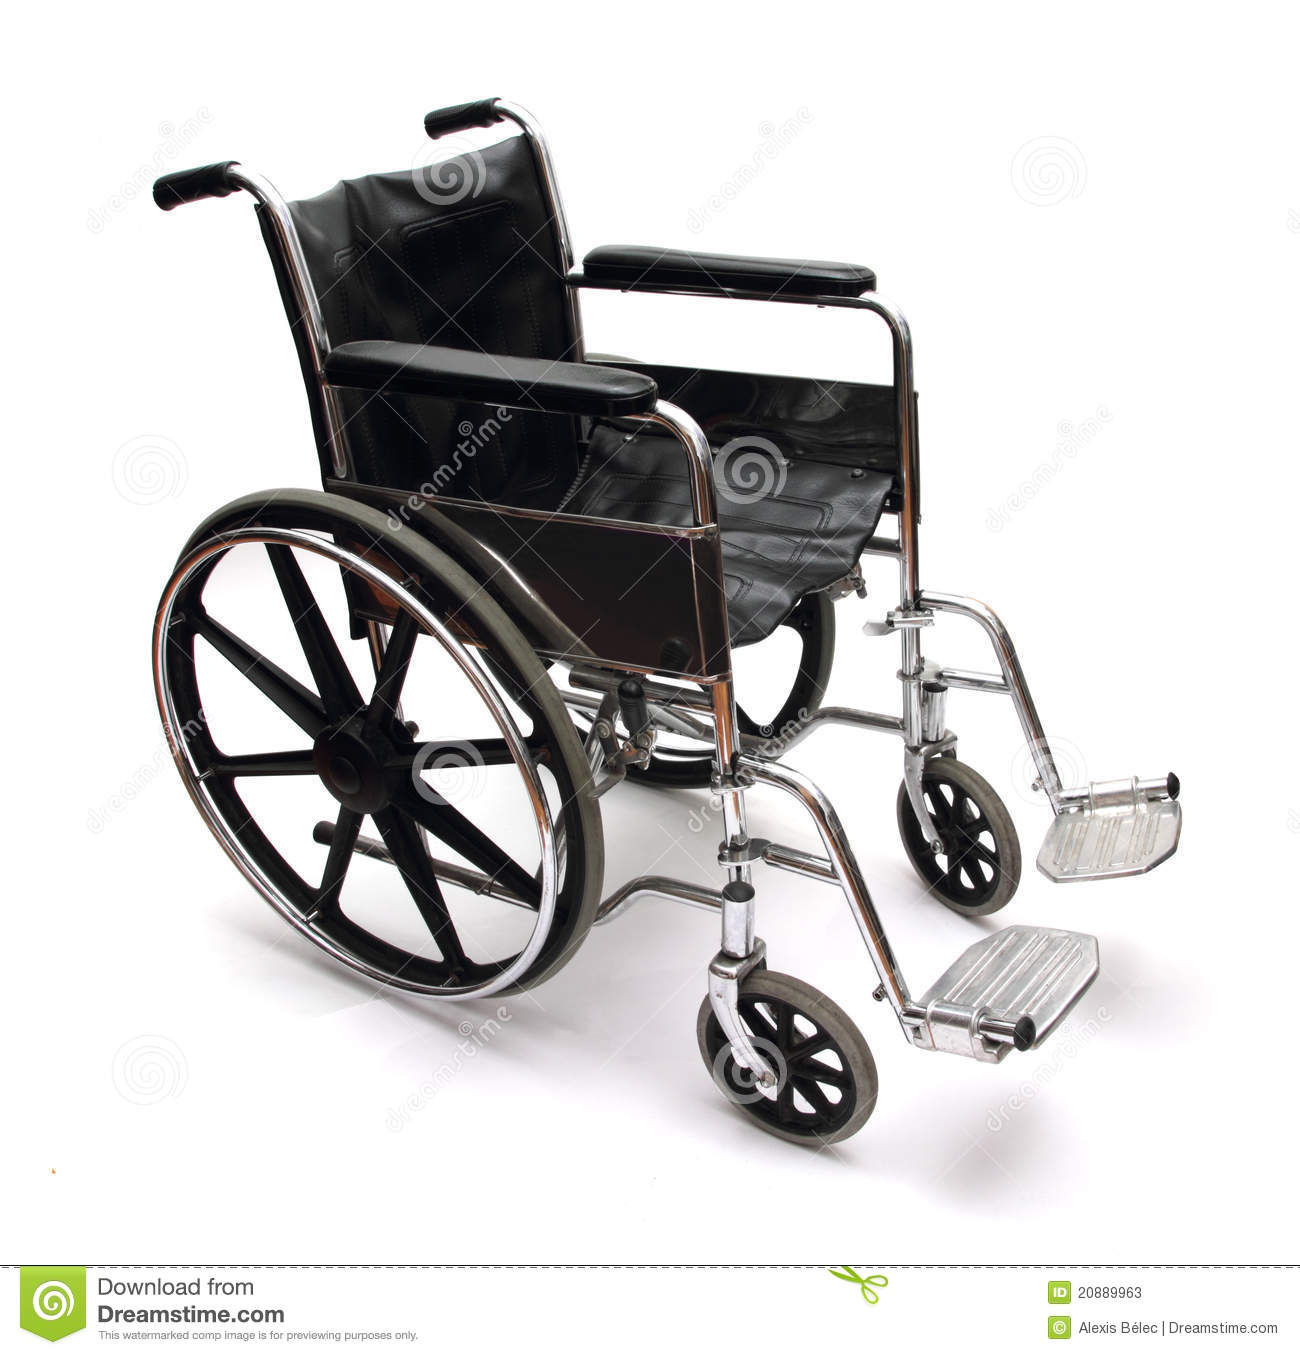 Wheel chair stock image. Image of disability, handicapped - 20889963